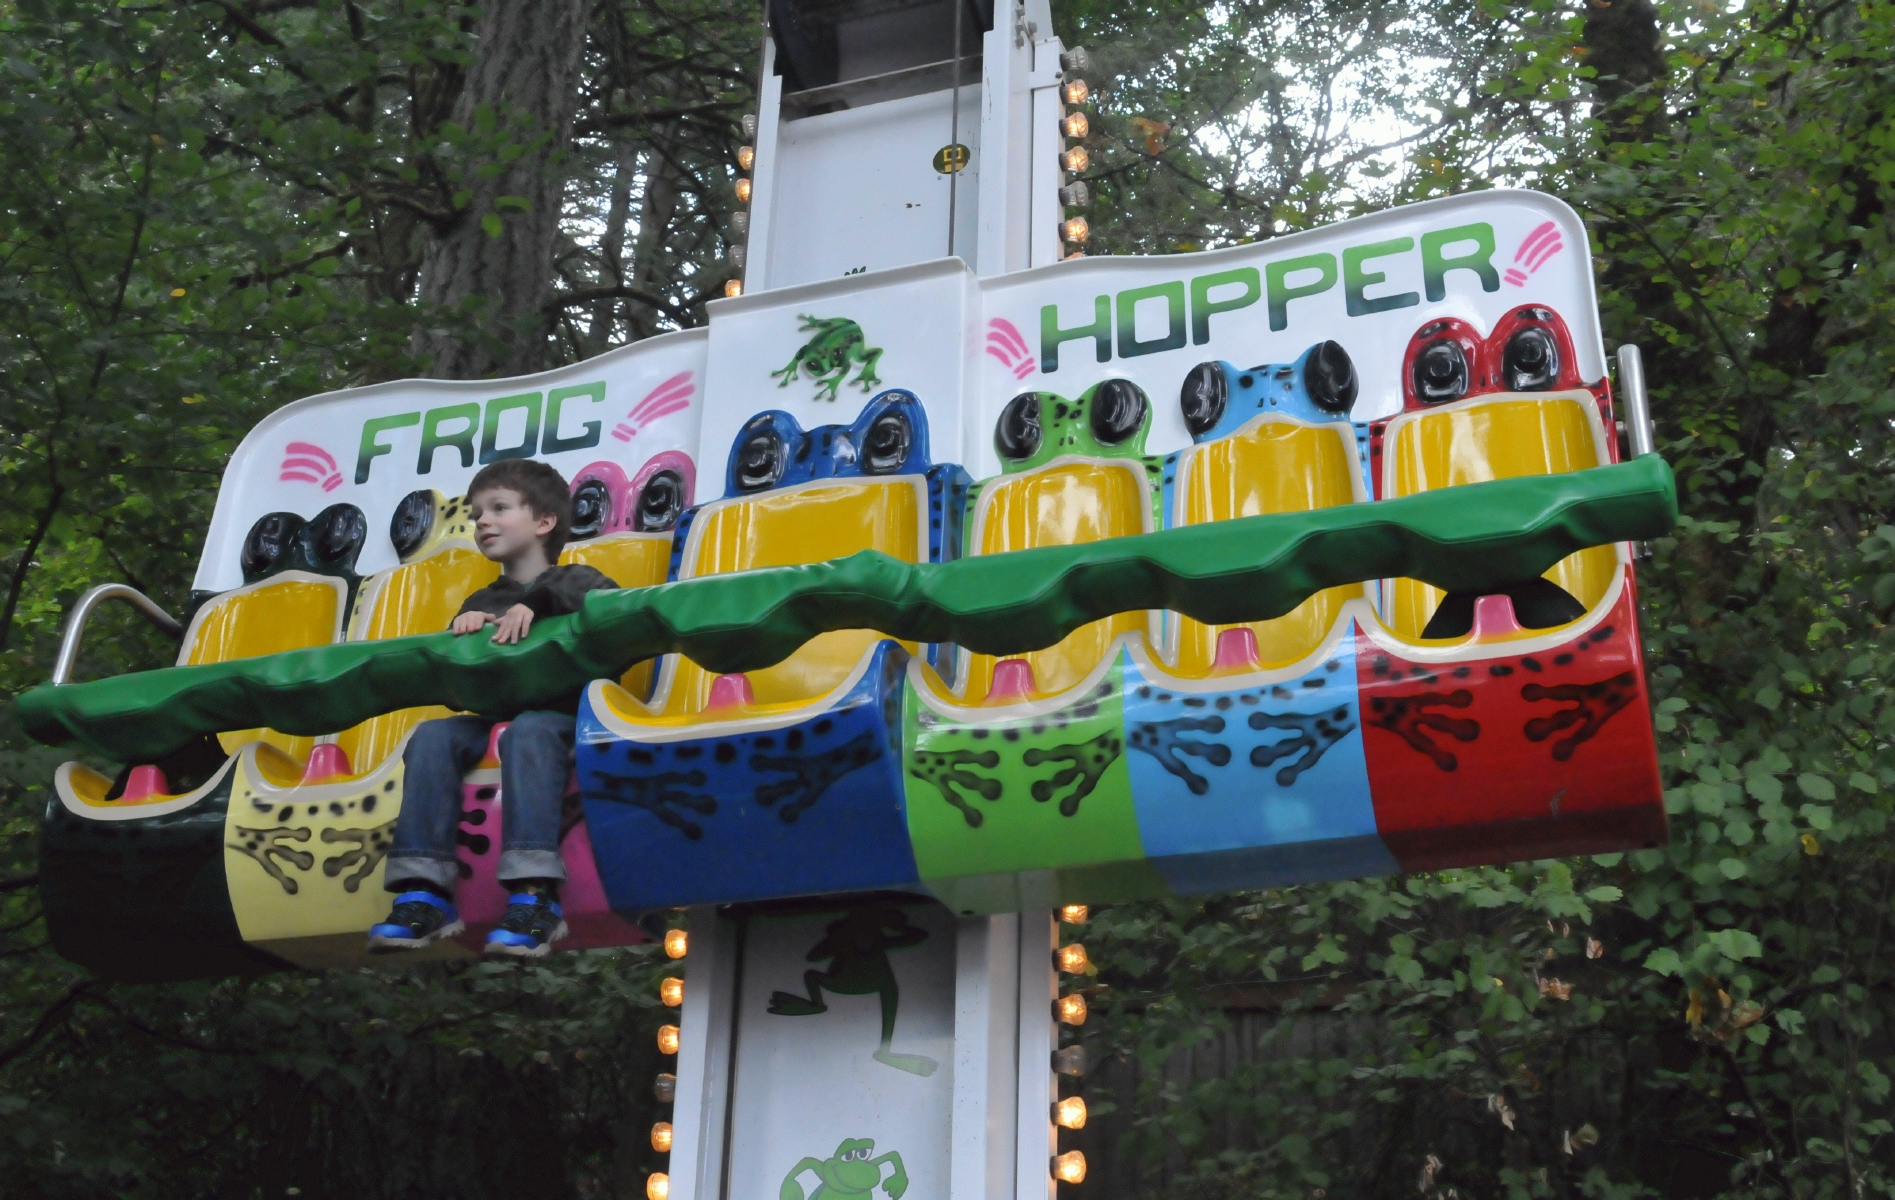 Enchanted Forest 20160904 124133 C16 8963 The Frog Hopper